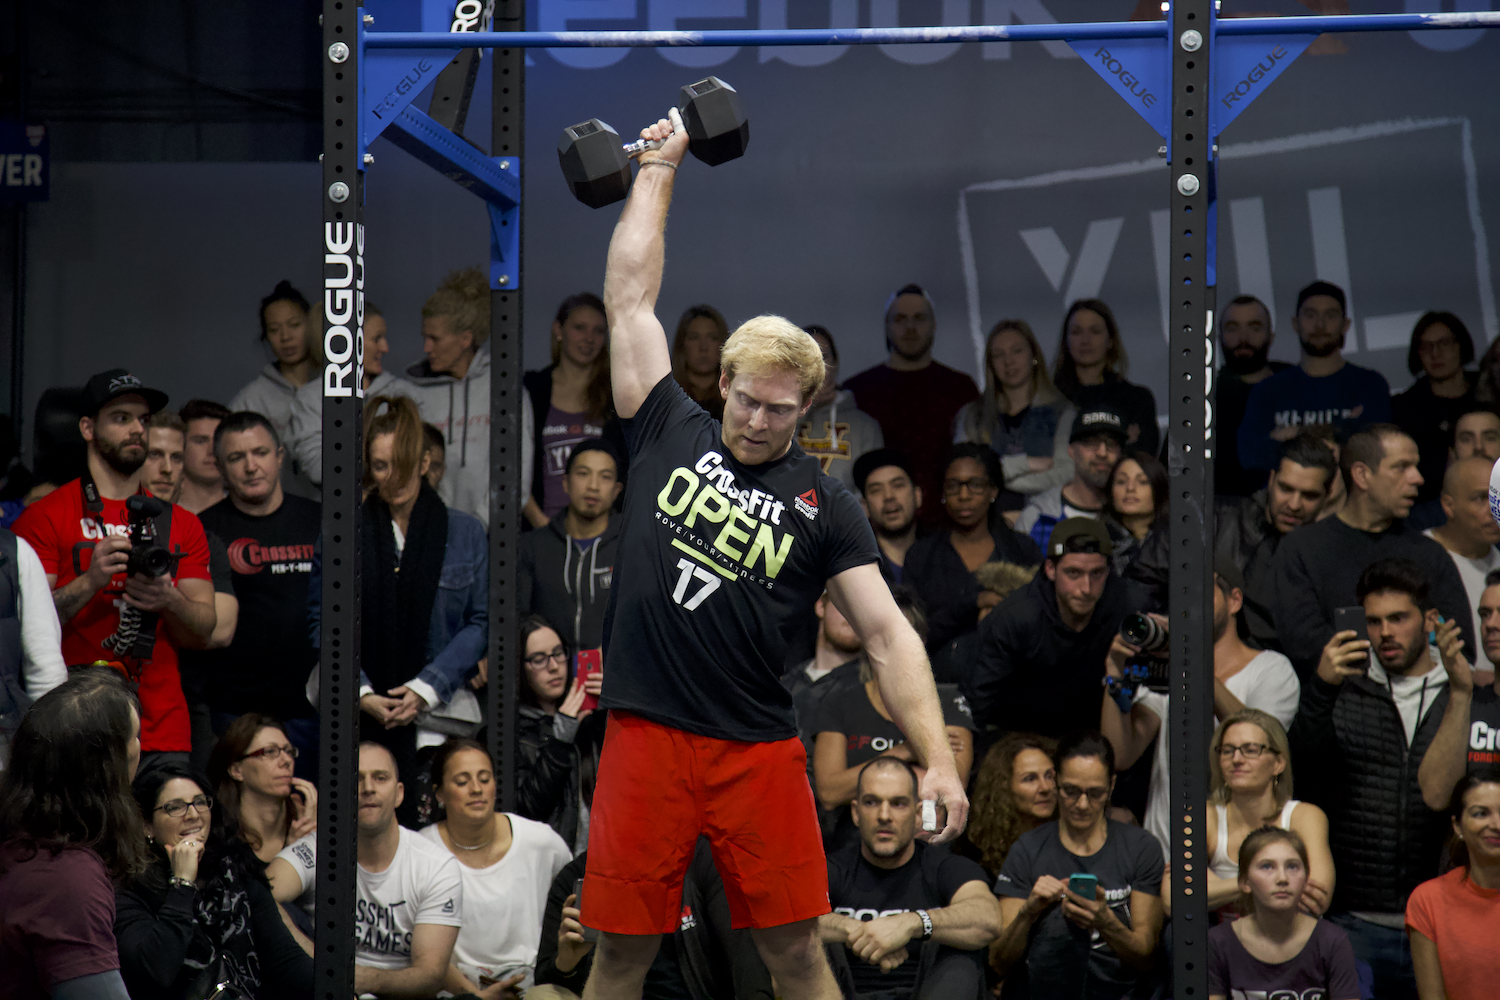 Patrick Vellner completing an Open workout